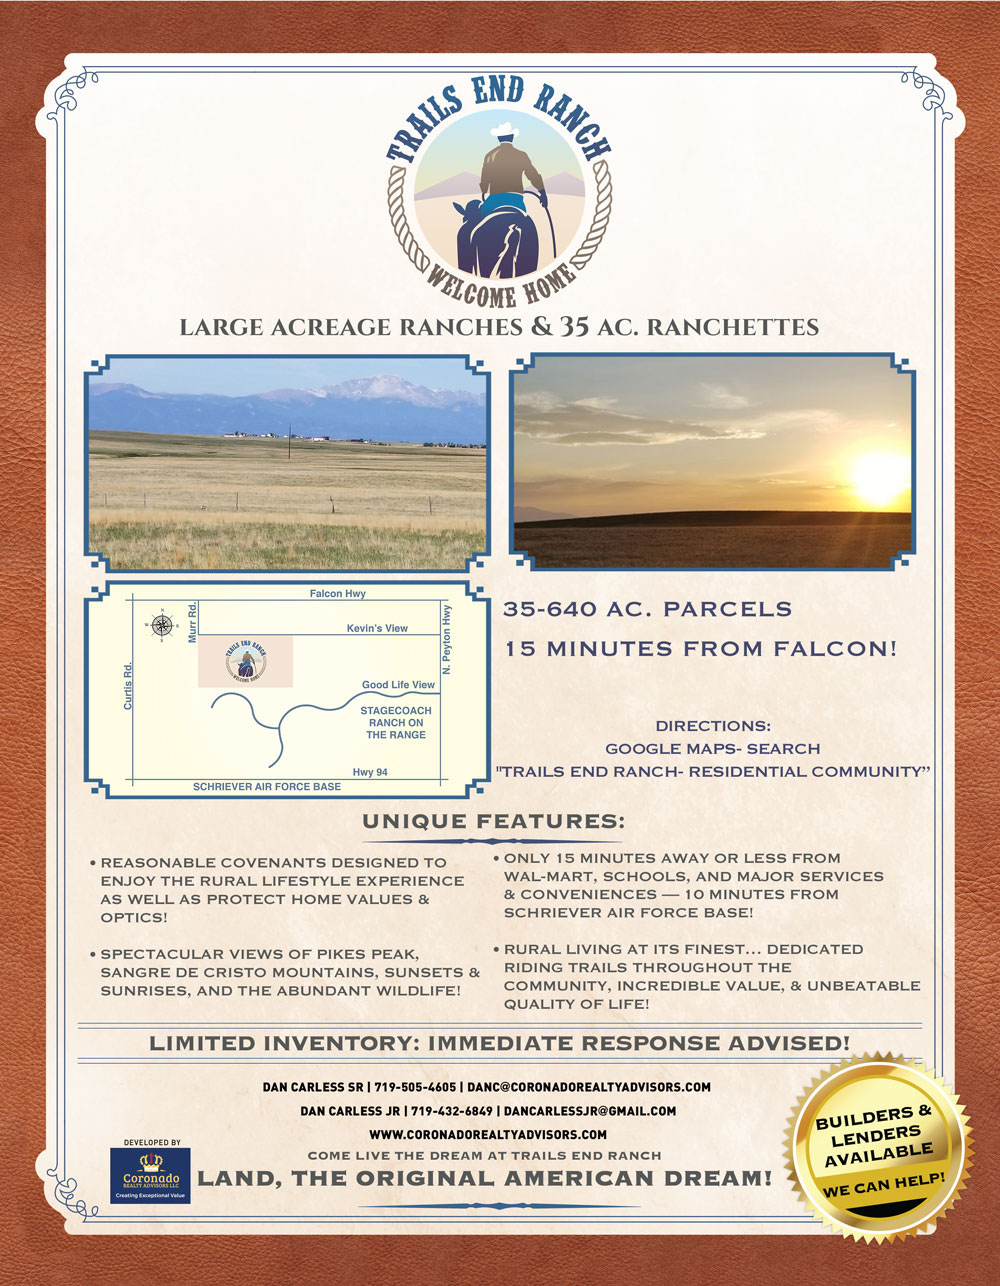 Trails End Ranch - Colorado Springs land for sale